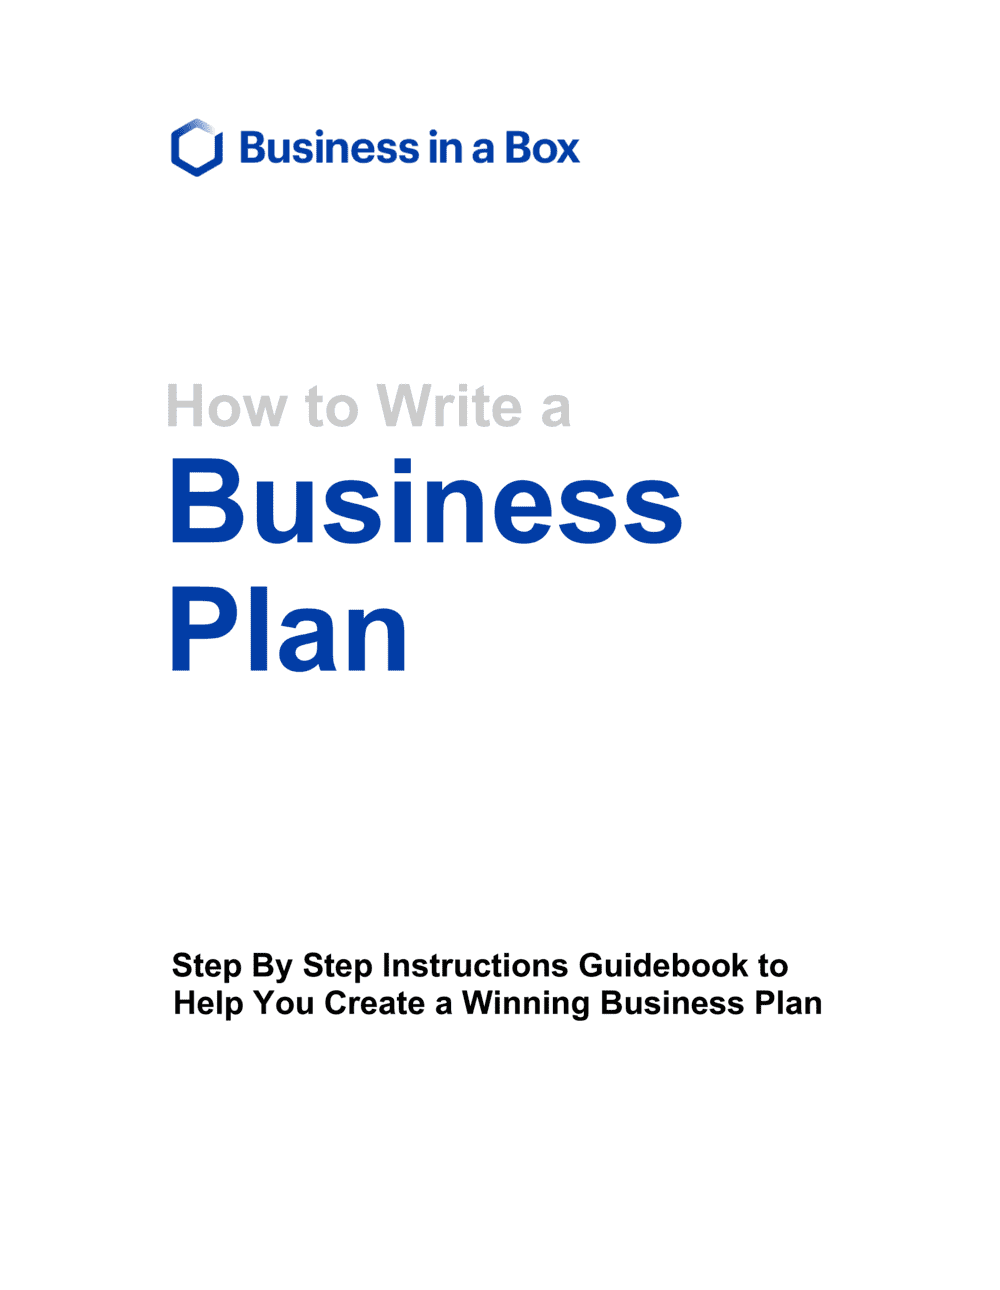 Business-in-a-Box's Business Plan Guidebook - Short Version Template